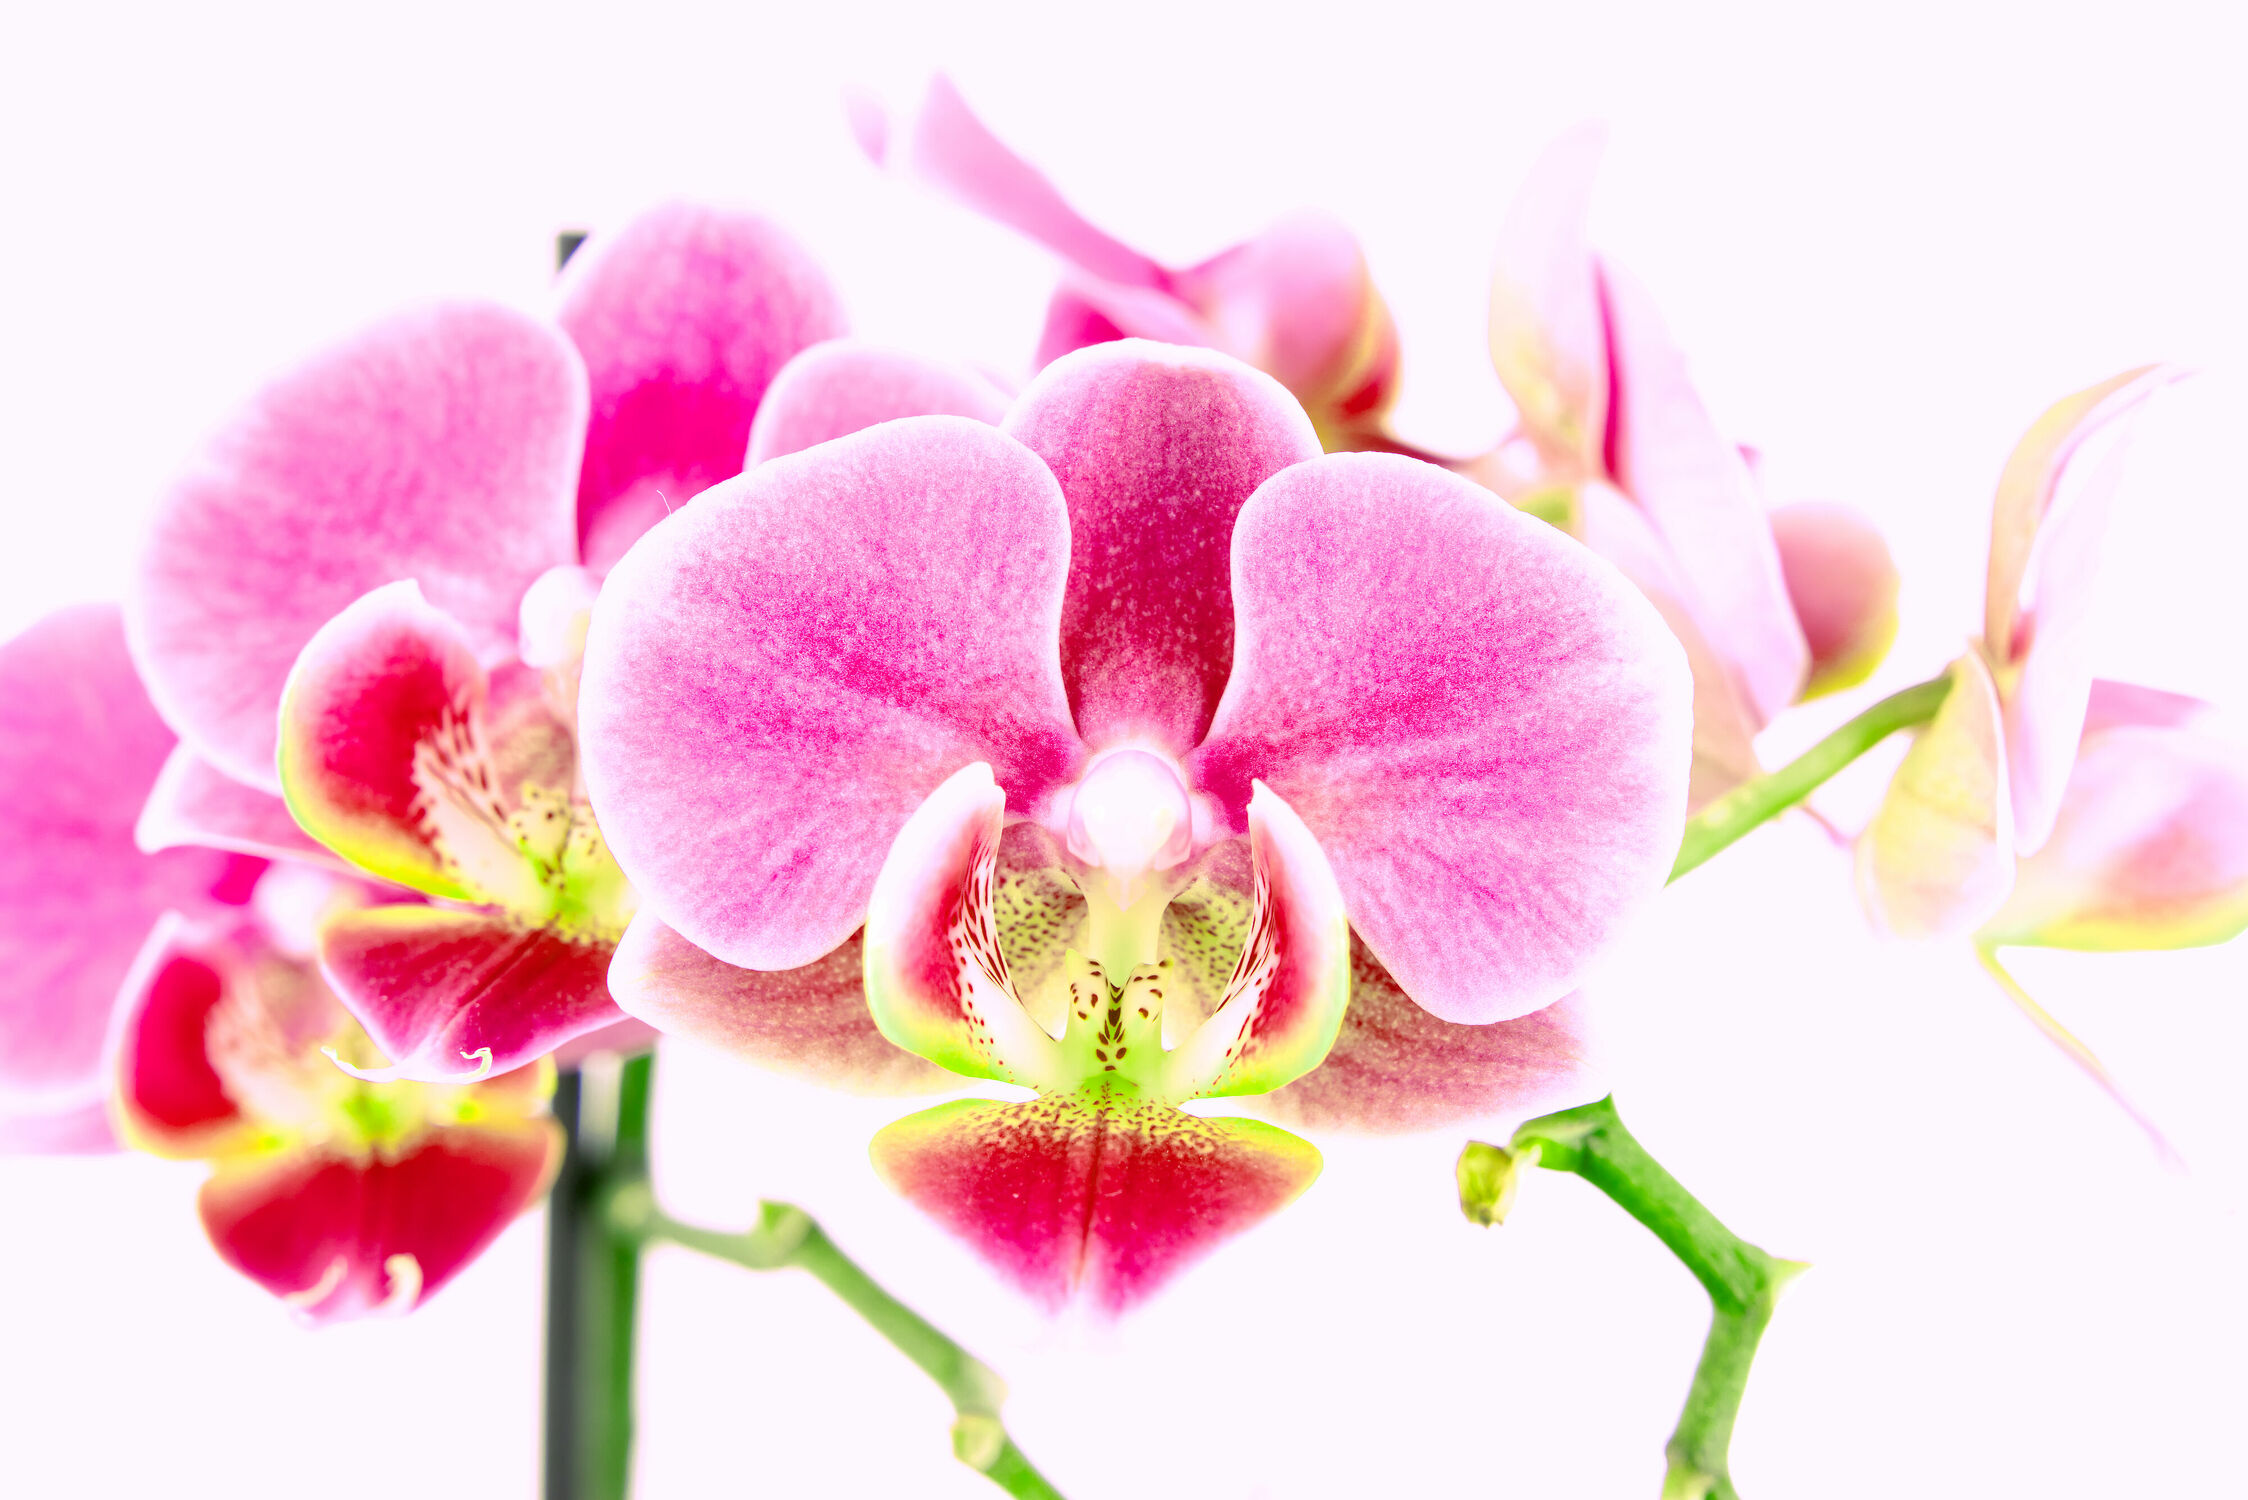 Bild mit Orchideen, Blume, Orchidee, Orchid, Orchids, Pflanze, Orchidaceae, Wellness, Spa, blüte